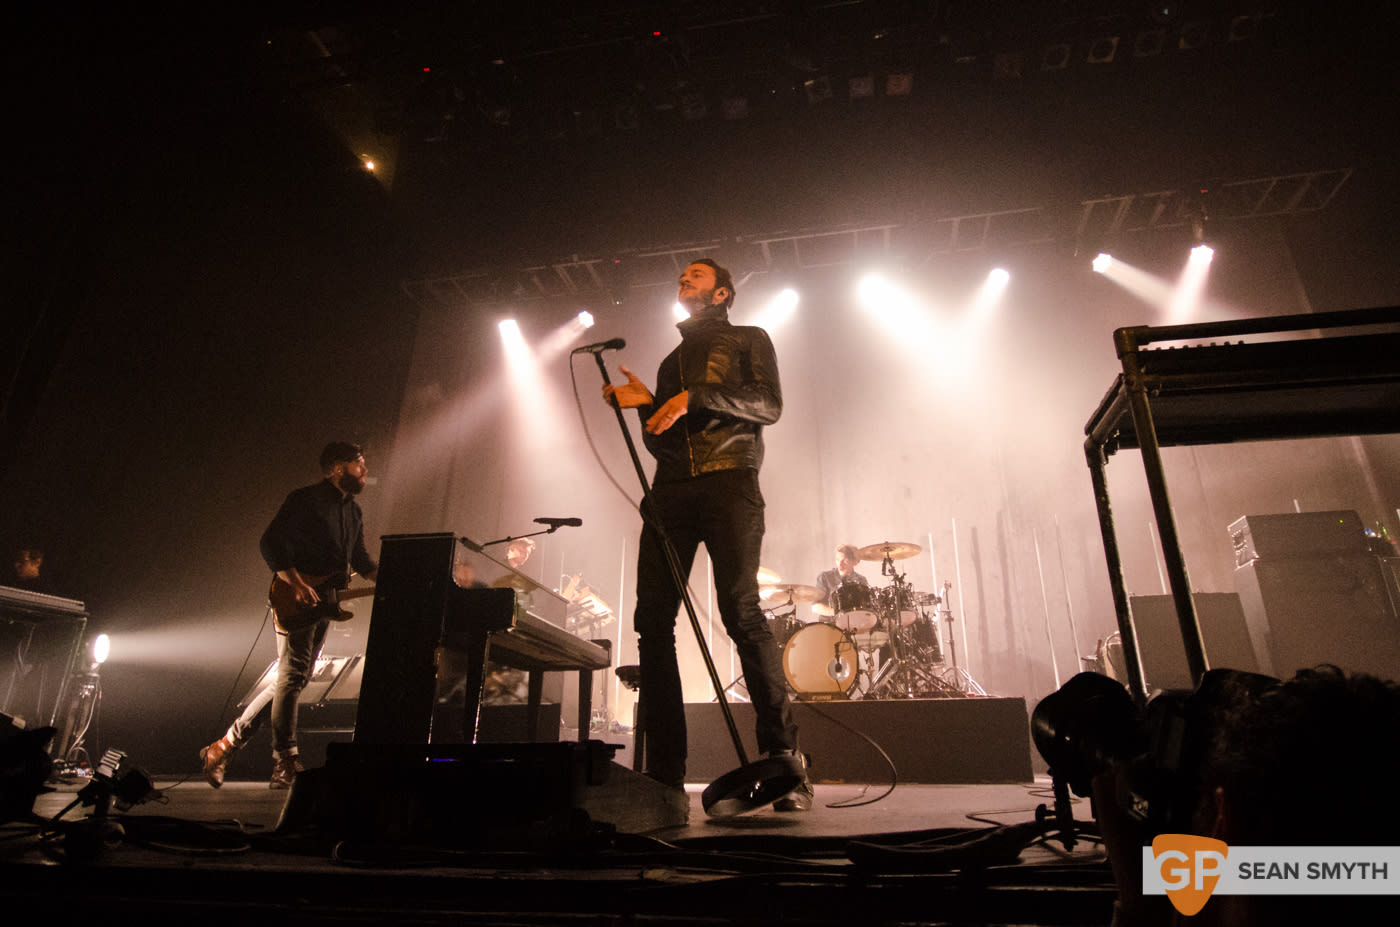 editors-at-the-olympia-theatre-by-sean-smyth-10-10-15-8-of-28_21903522929_o